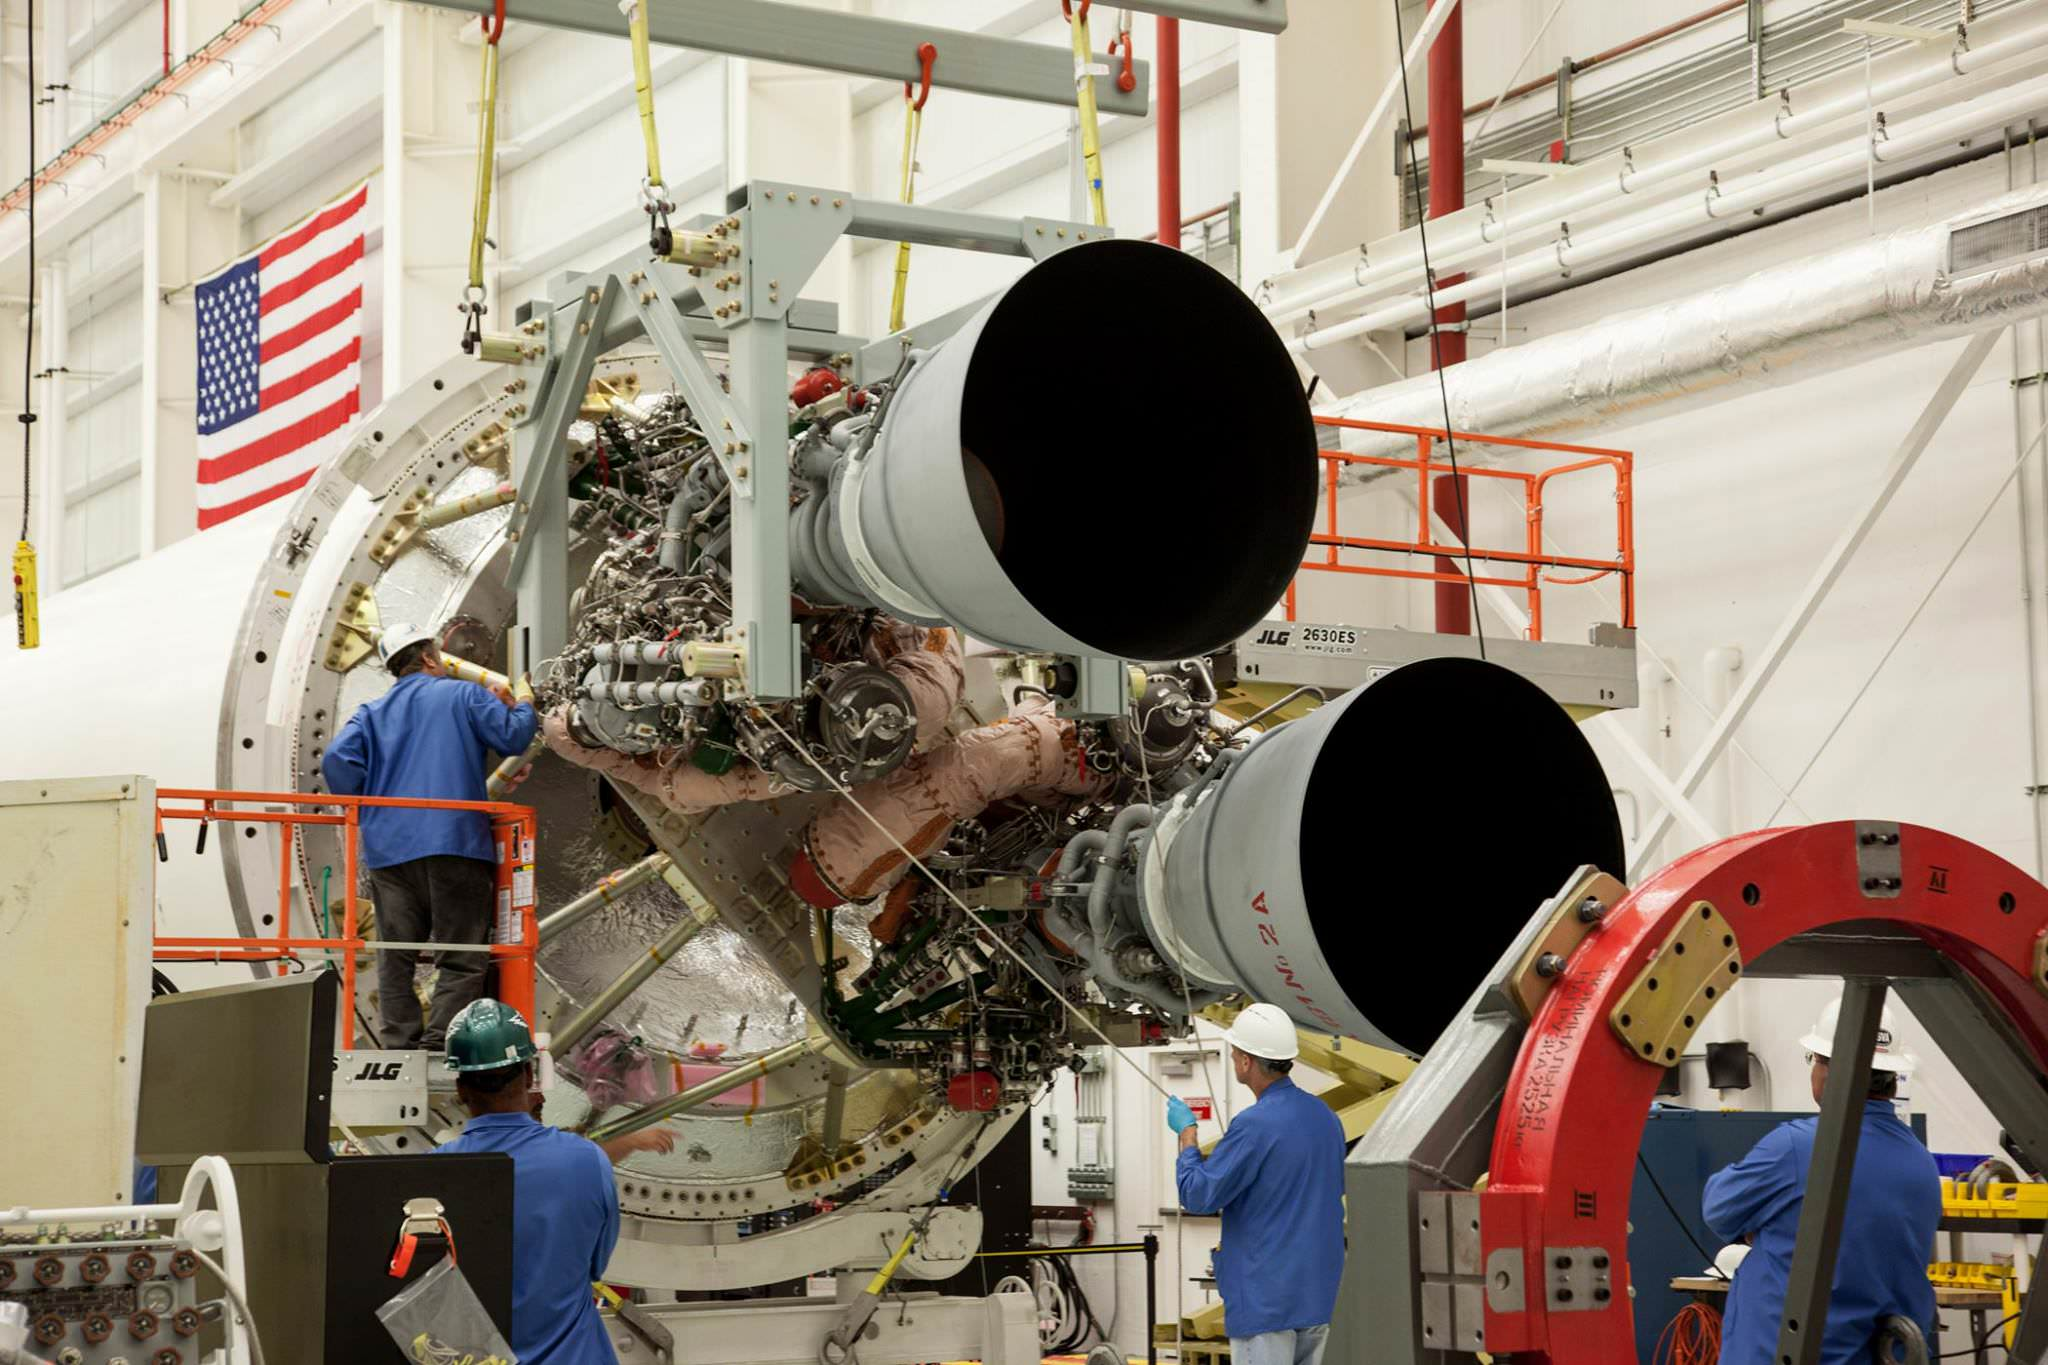 Two RD-181 integrated with the Orbital ATK Antares first stage air frame at the Wallops Island, Virginia Horizontal Integration Facility (HIF). Return to flight launch is expected sometime during Spring 2016.  Credit: NASA/ Terry Zaperach